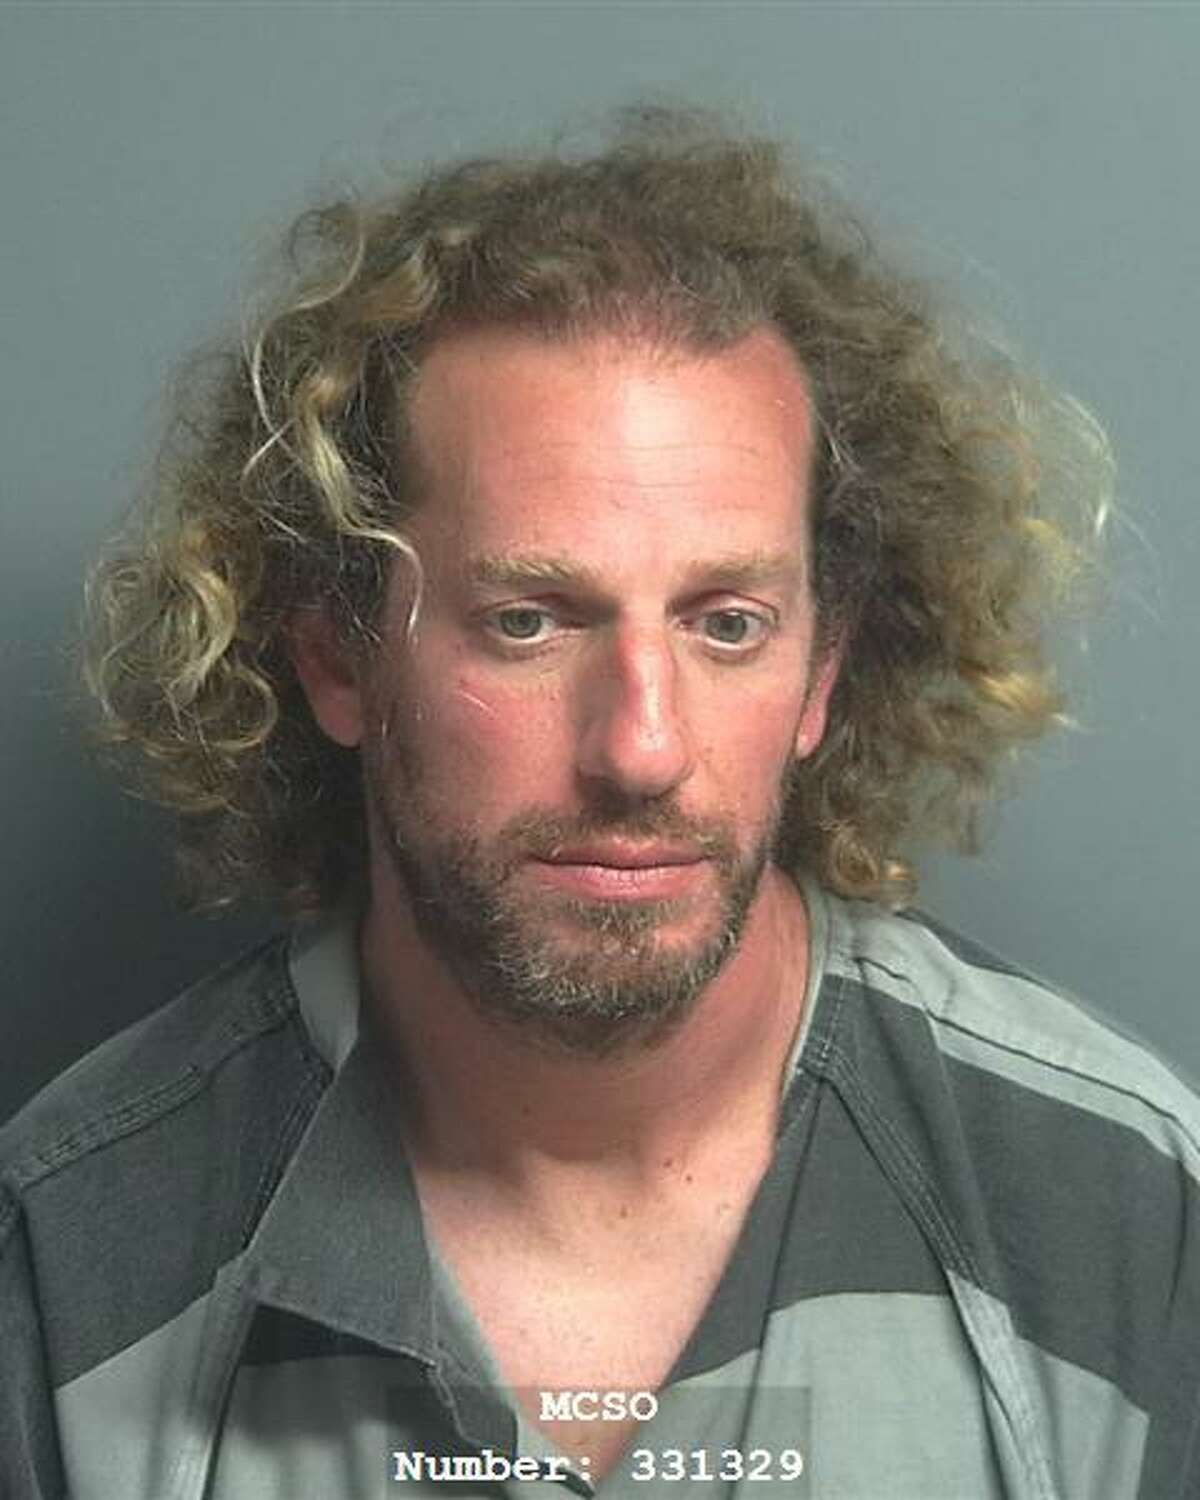 Roi Amrani, 42, of The Woodlands, is charged with invasive visual recording, a state jail felony.